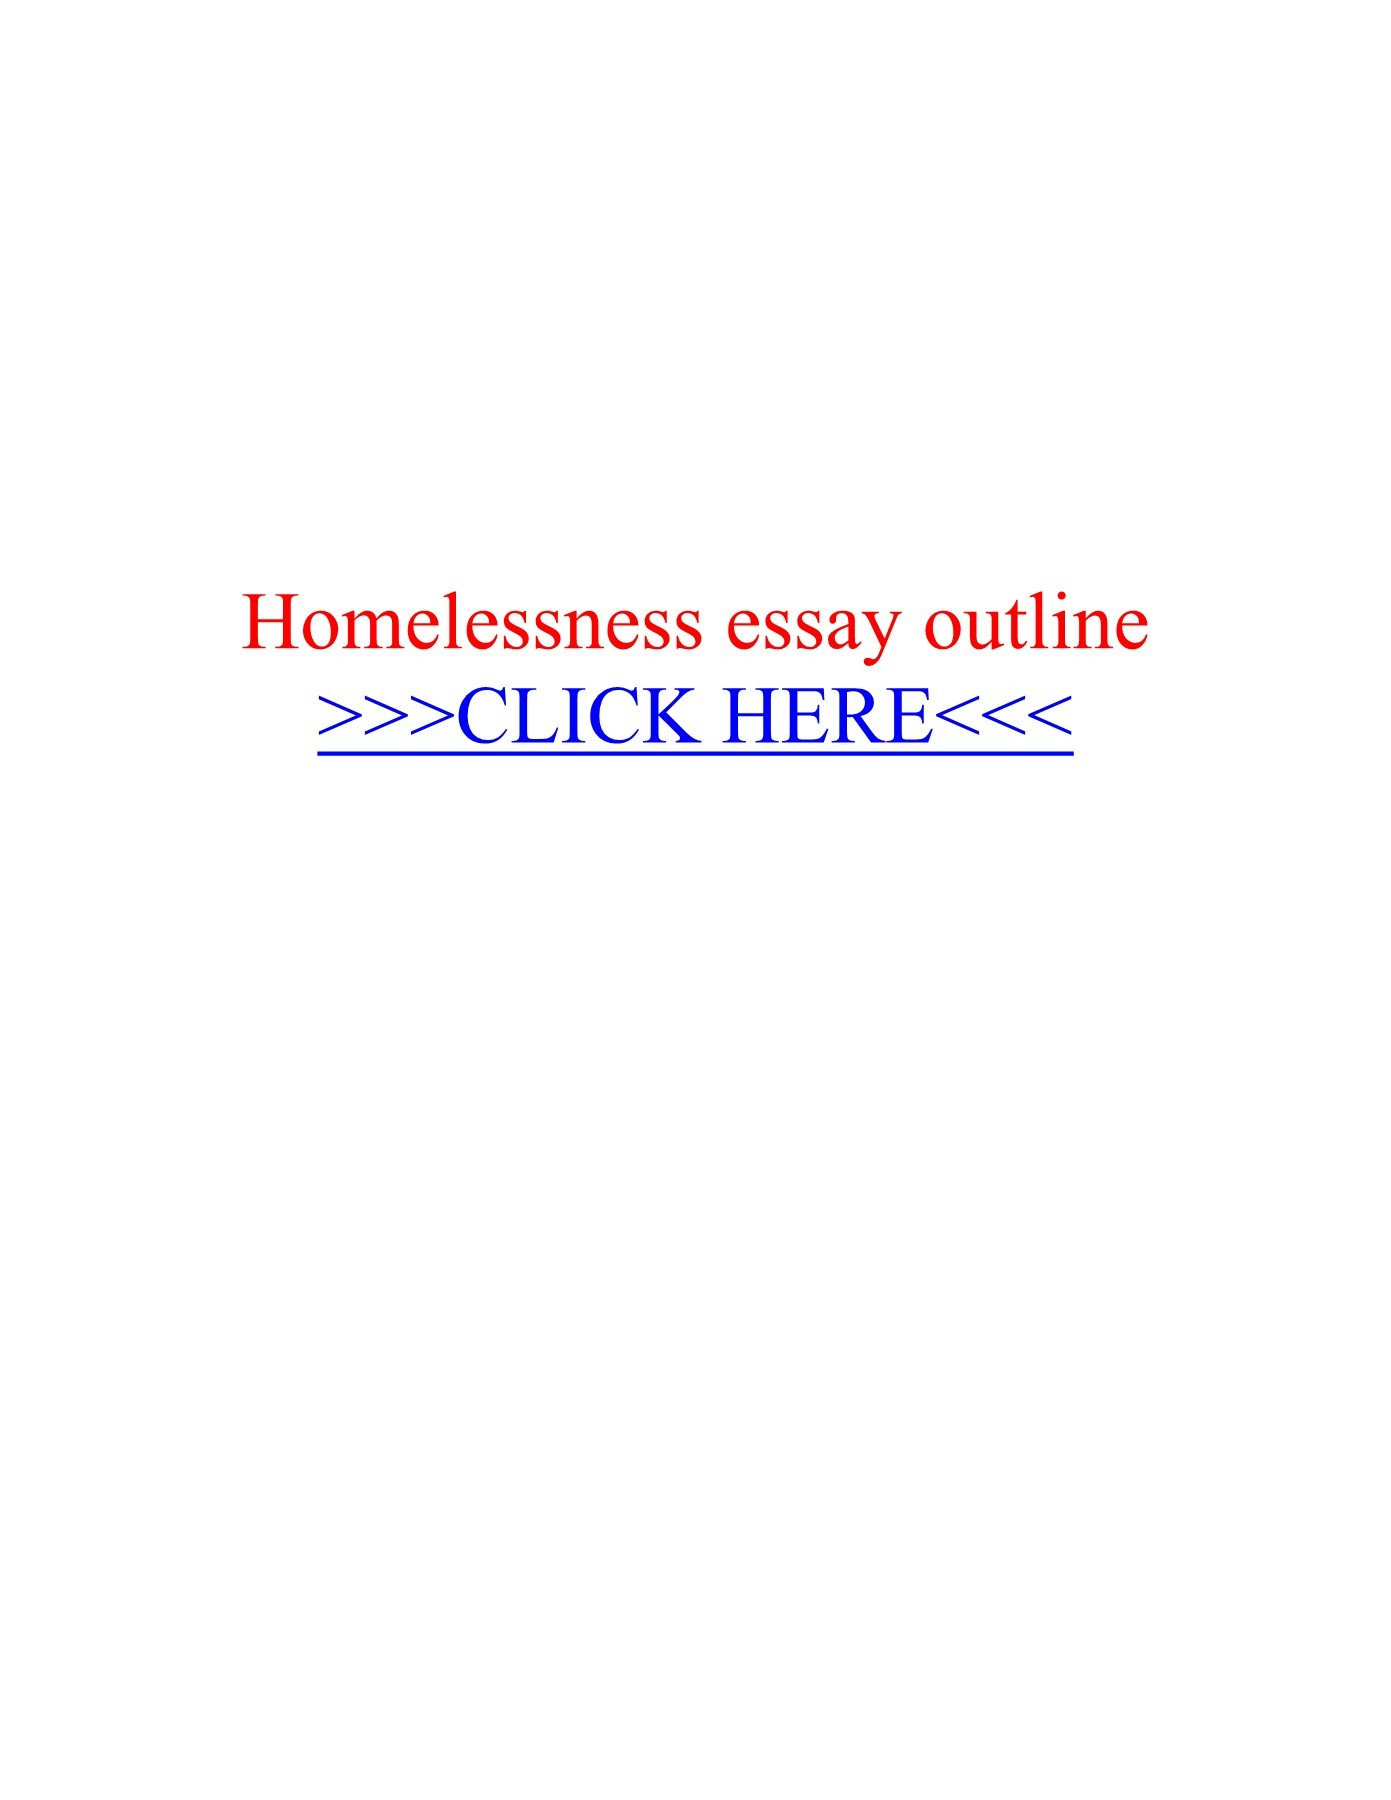 013 Homelessness Essay Beautiful Topics Outline Conclusion Full